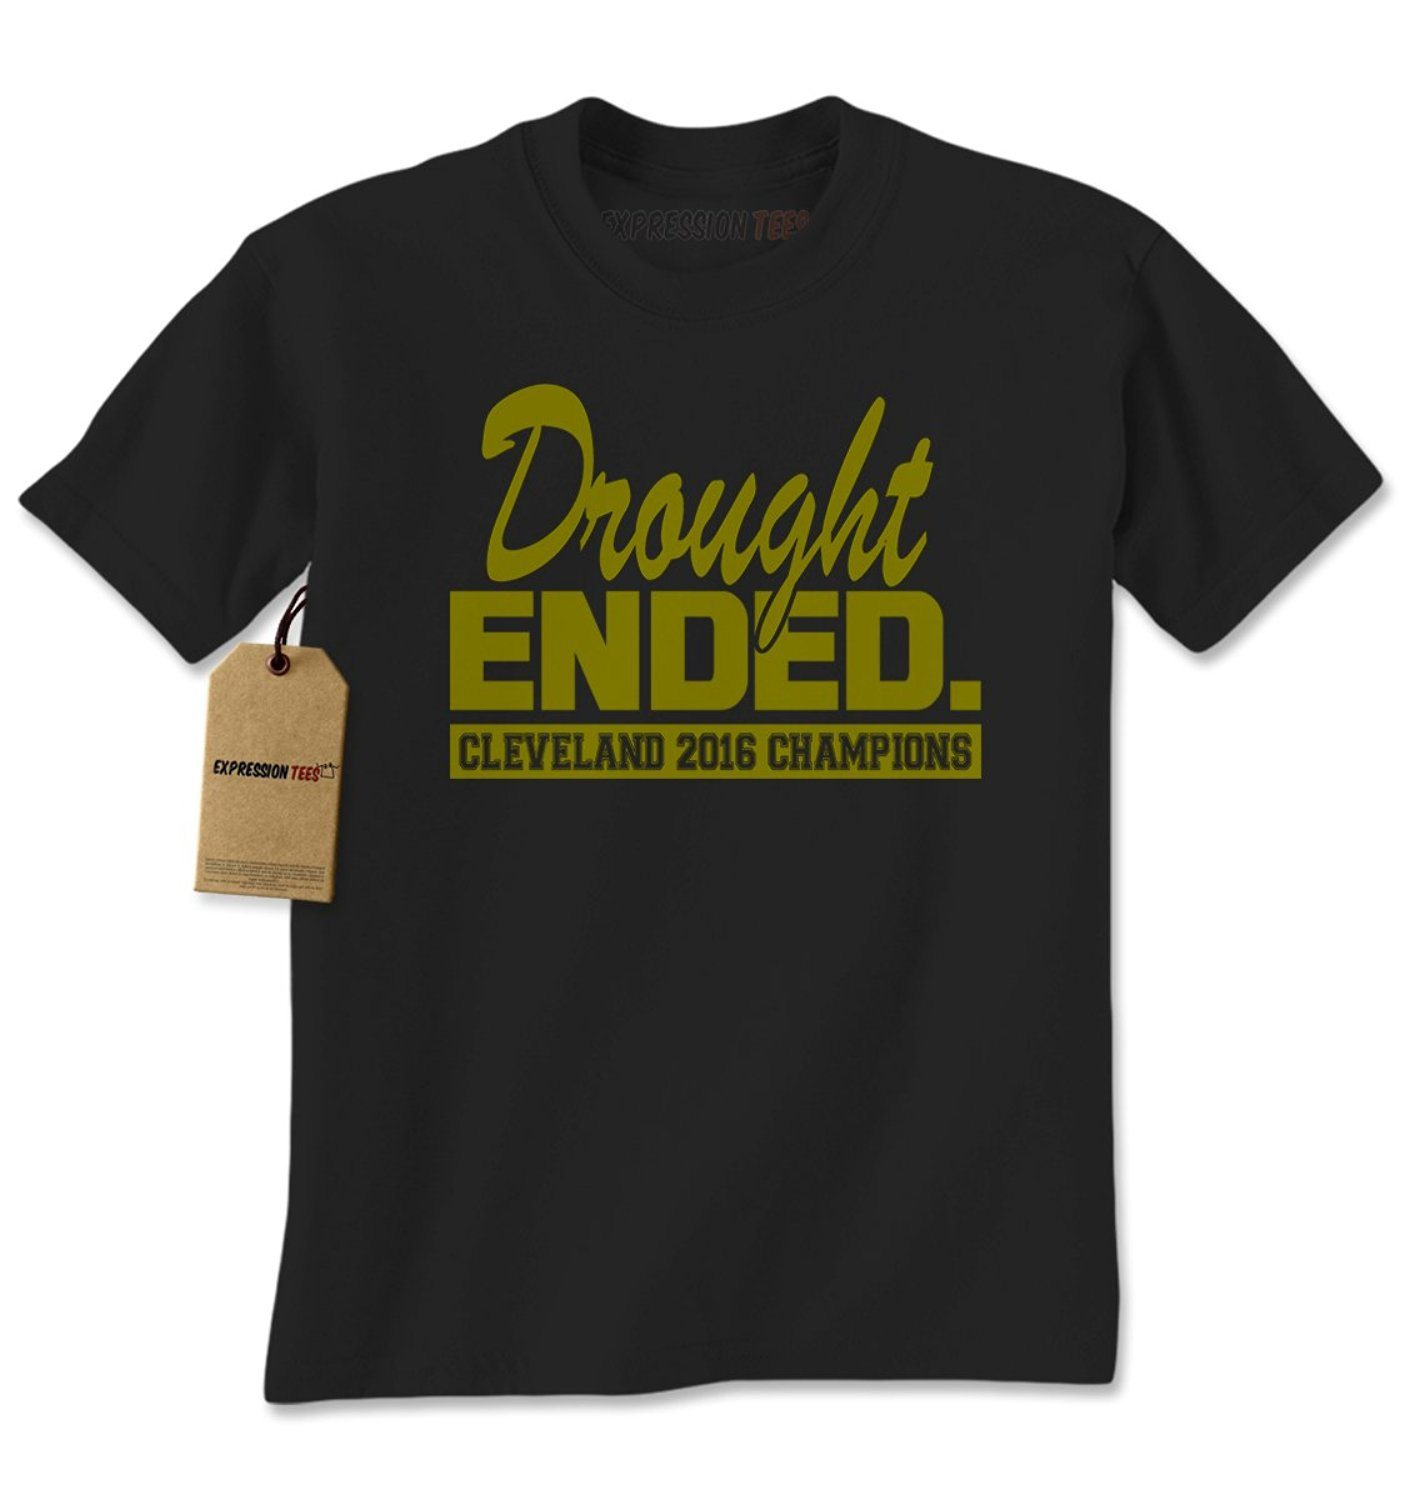 Expression Tees Drought Ended Cleveland 2016 Champions Mens